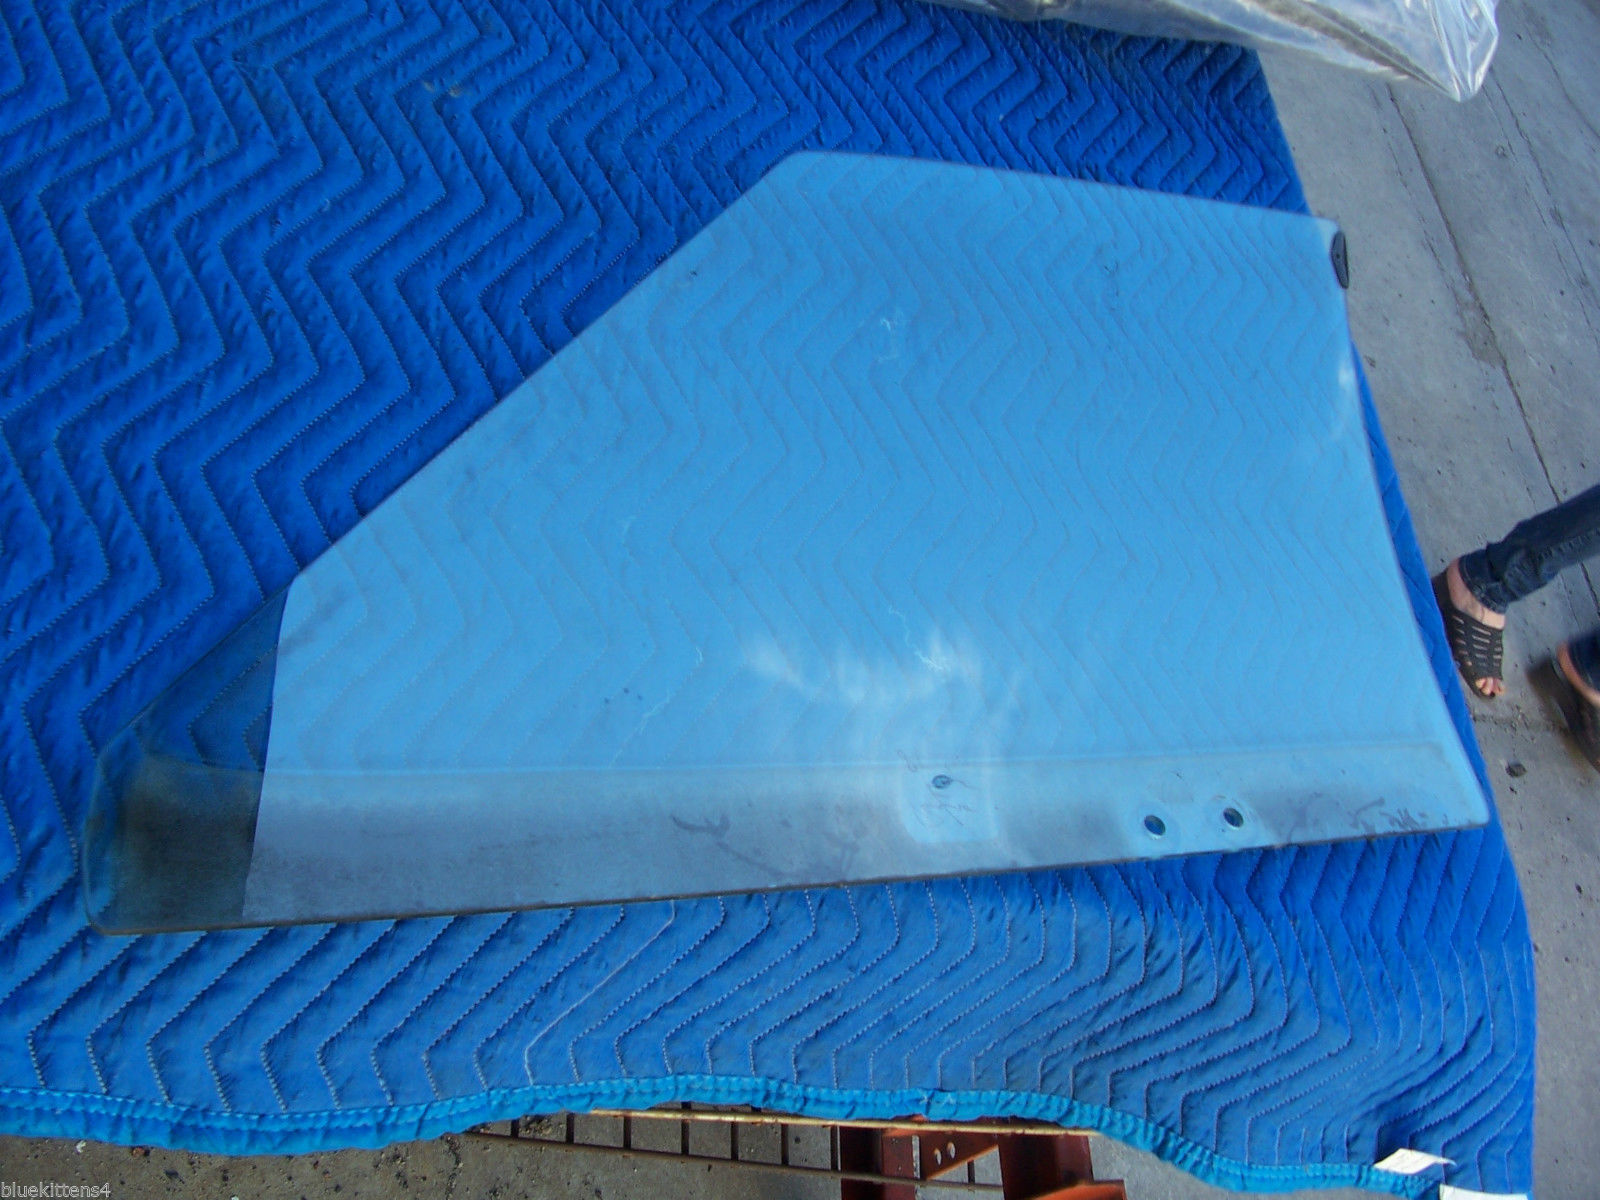 1985 BROUGHAM RIGHT FRONT SIDE WINDOW GLASS OEM USED ORIGINAL CADILLAC GM PART